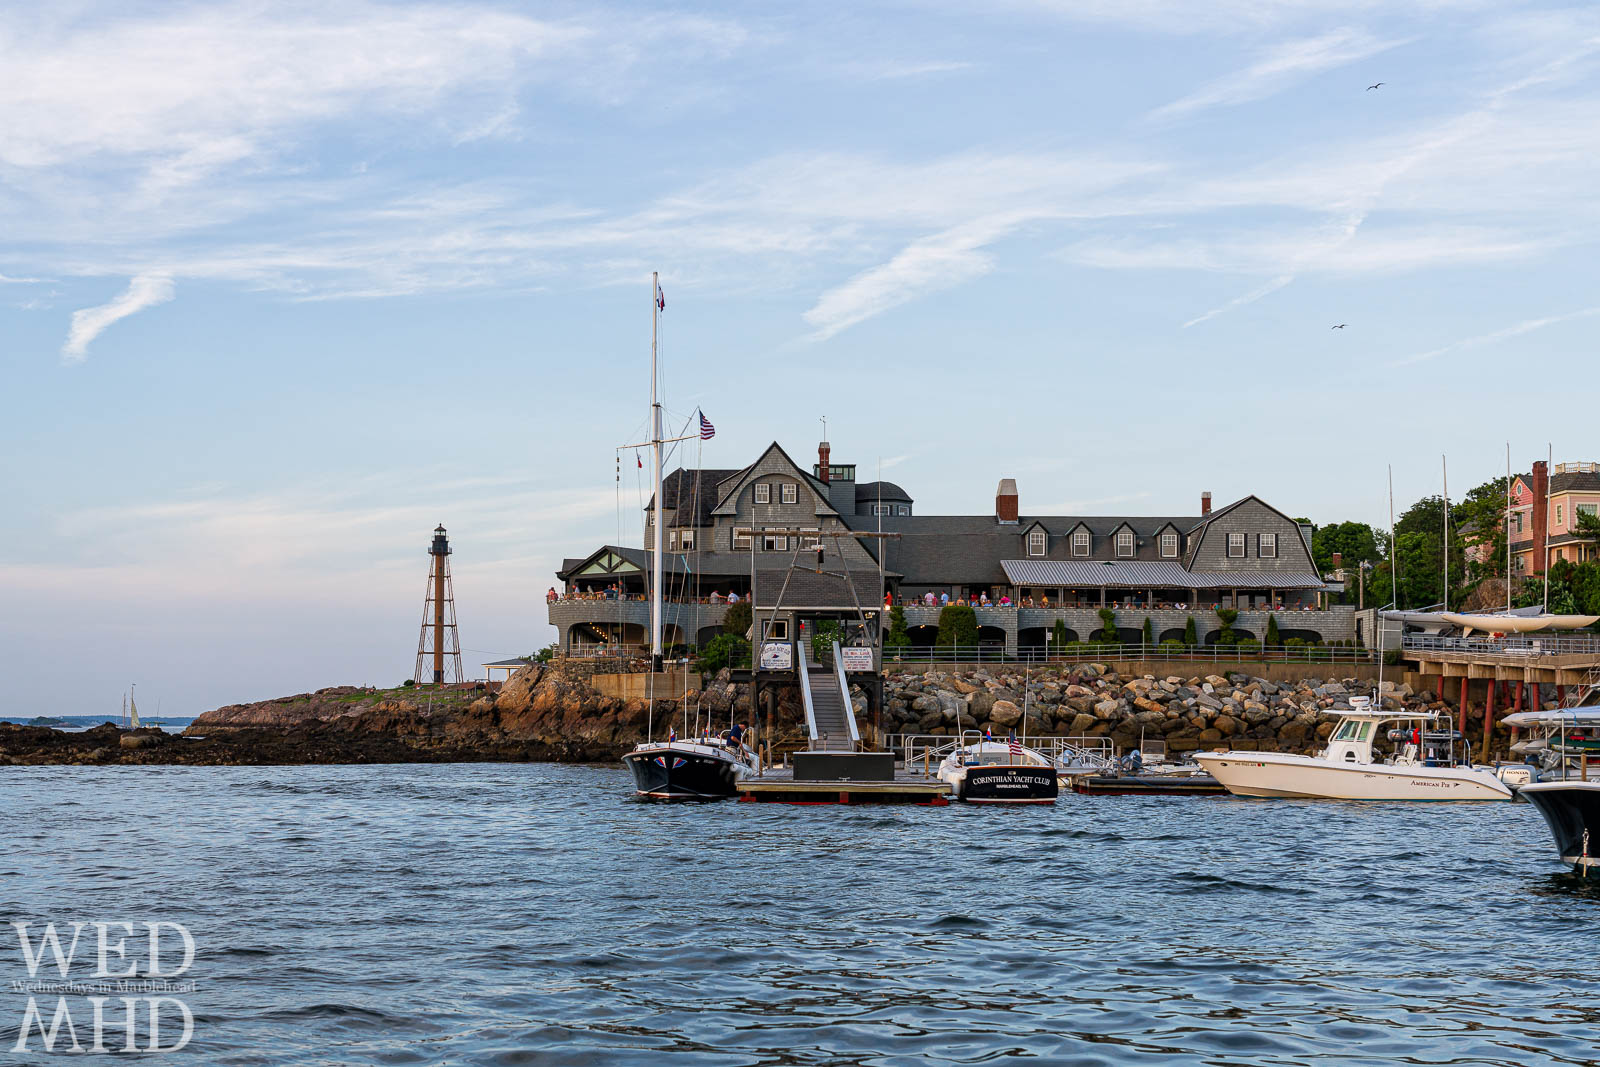 The Corinthian Yacht Club is packed on a Friday evening in the summer with Marblehead Light standing in close proximity from its spot on Chandler Hovey Park